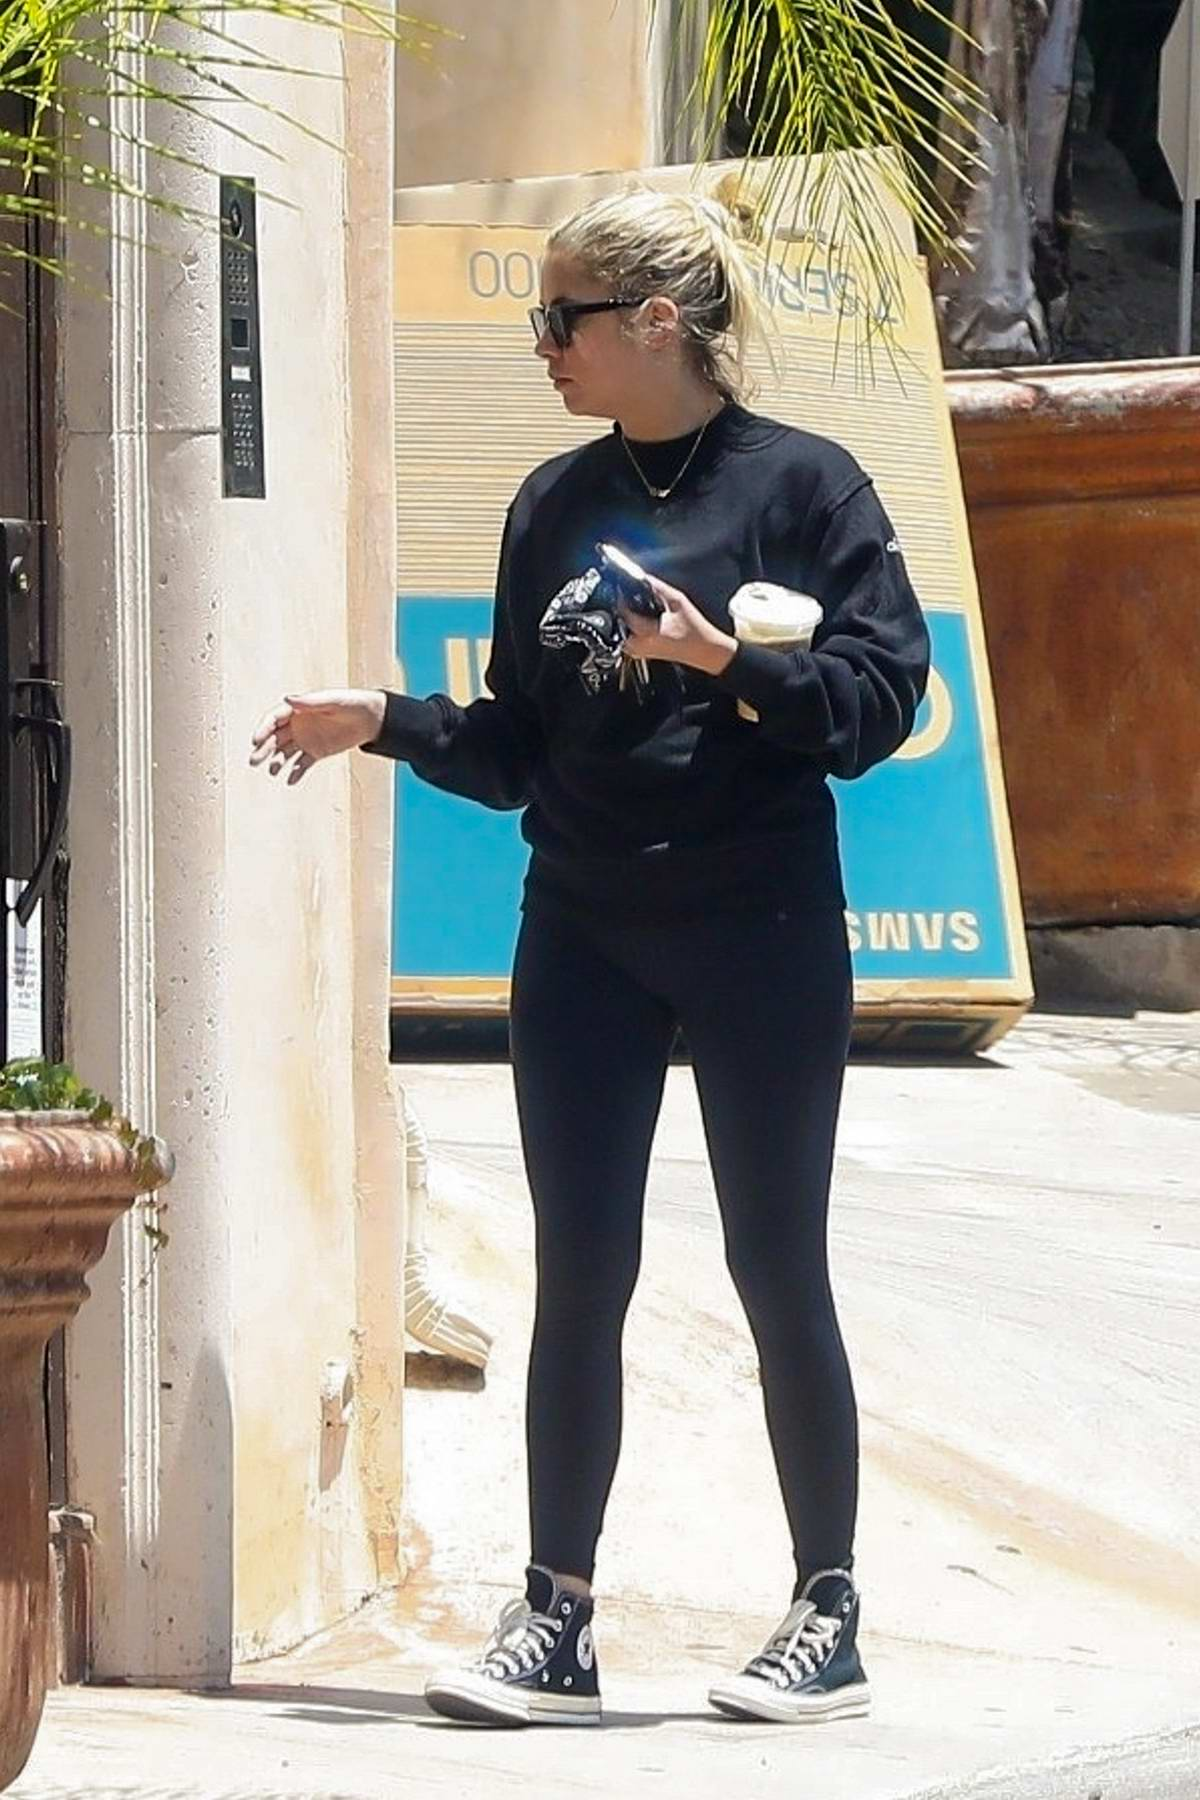 Ashley Benson arrives back at boyfriend G-Eazy's home after an iced coffee run in Los Angeles